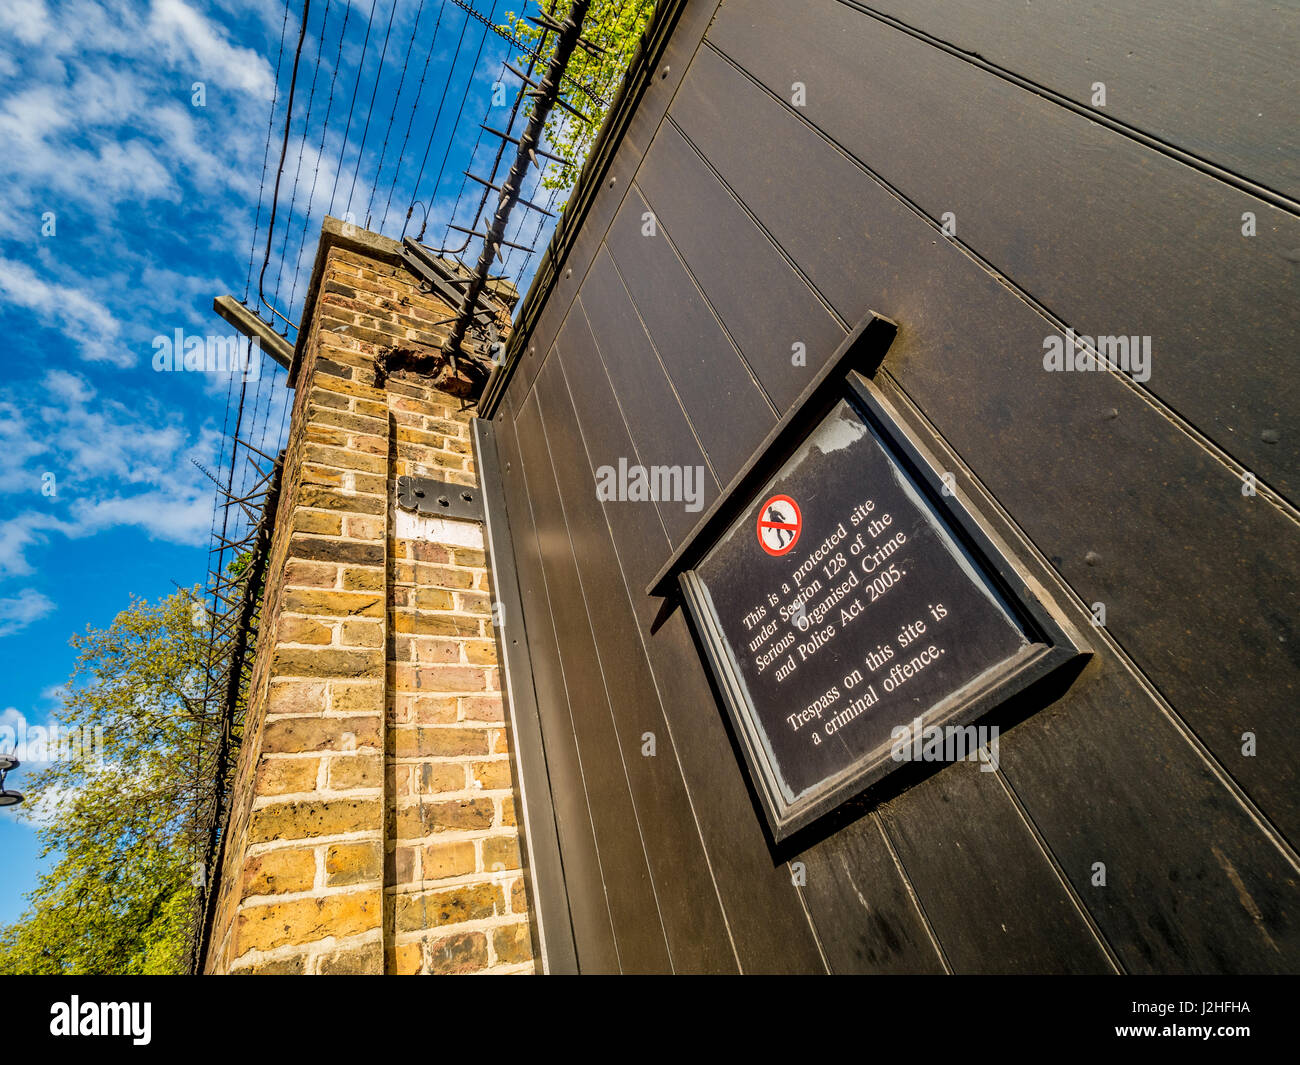 Warning sign and barriers along perimeter wall of buckingham Palace, London, UK. - Stock Image